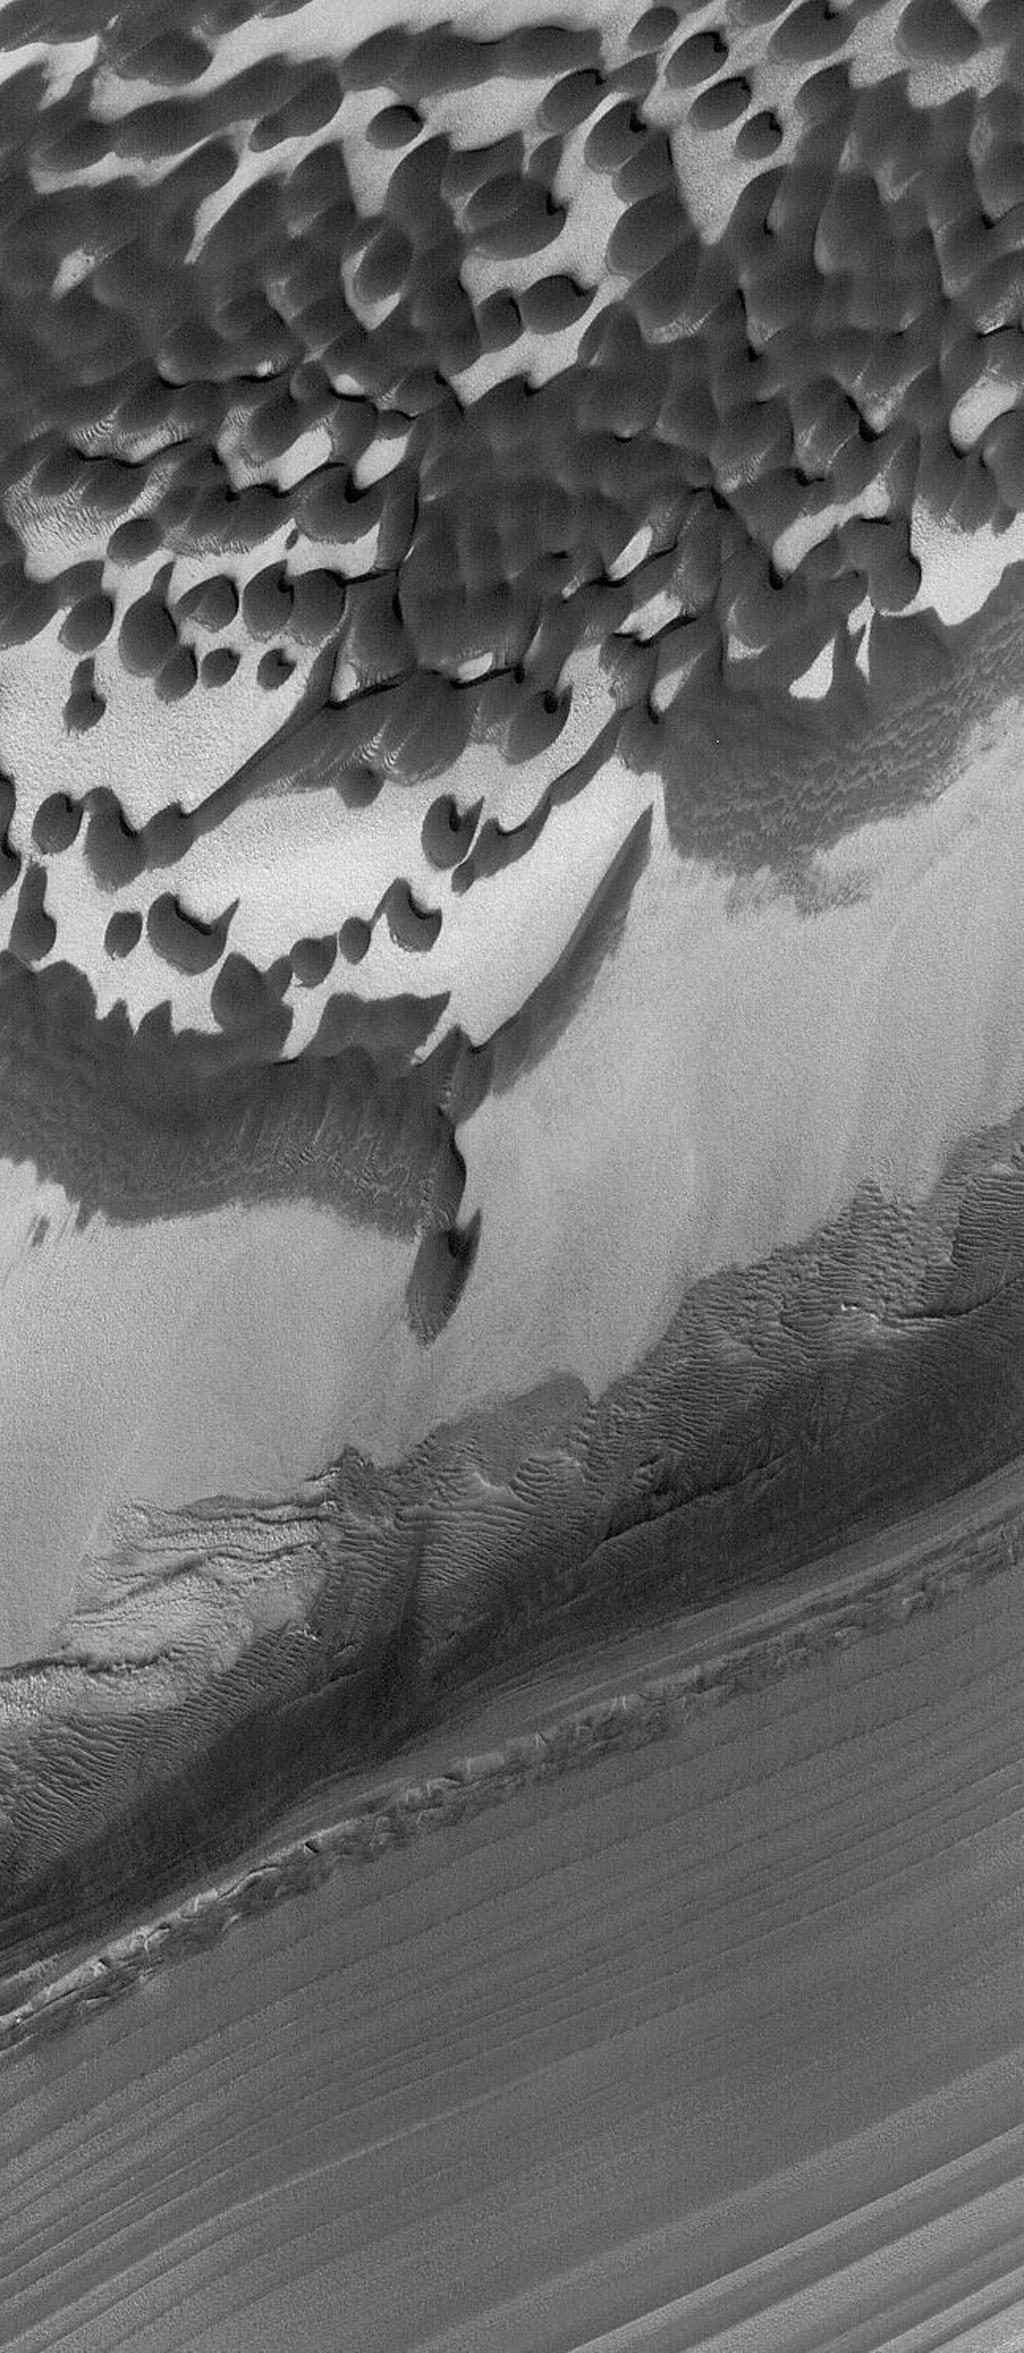 This Mars Global Surveyor (MGS) Mars Orbiter Camera (MOC) image shows layers and dunes in Chasma Boreale, a large depression in the north polar region.